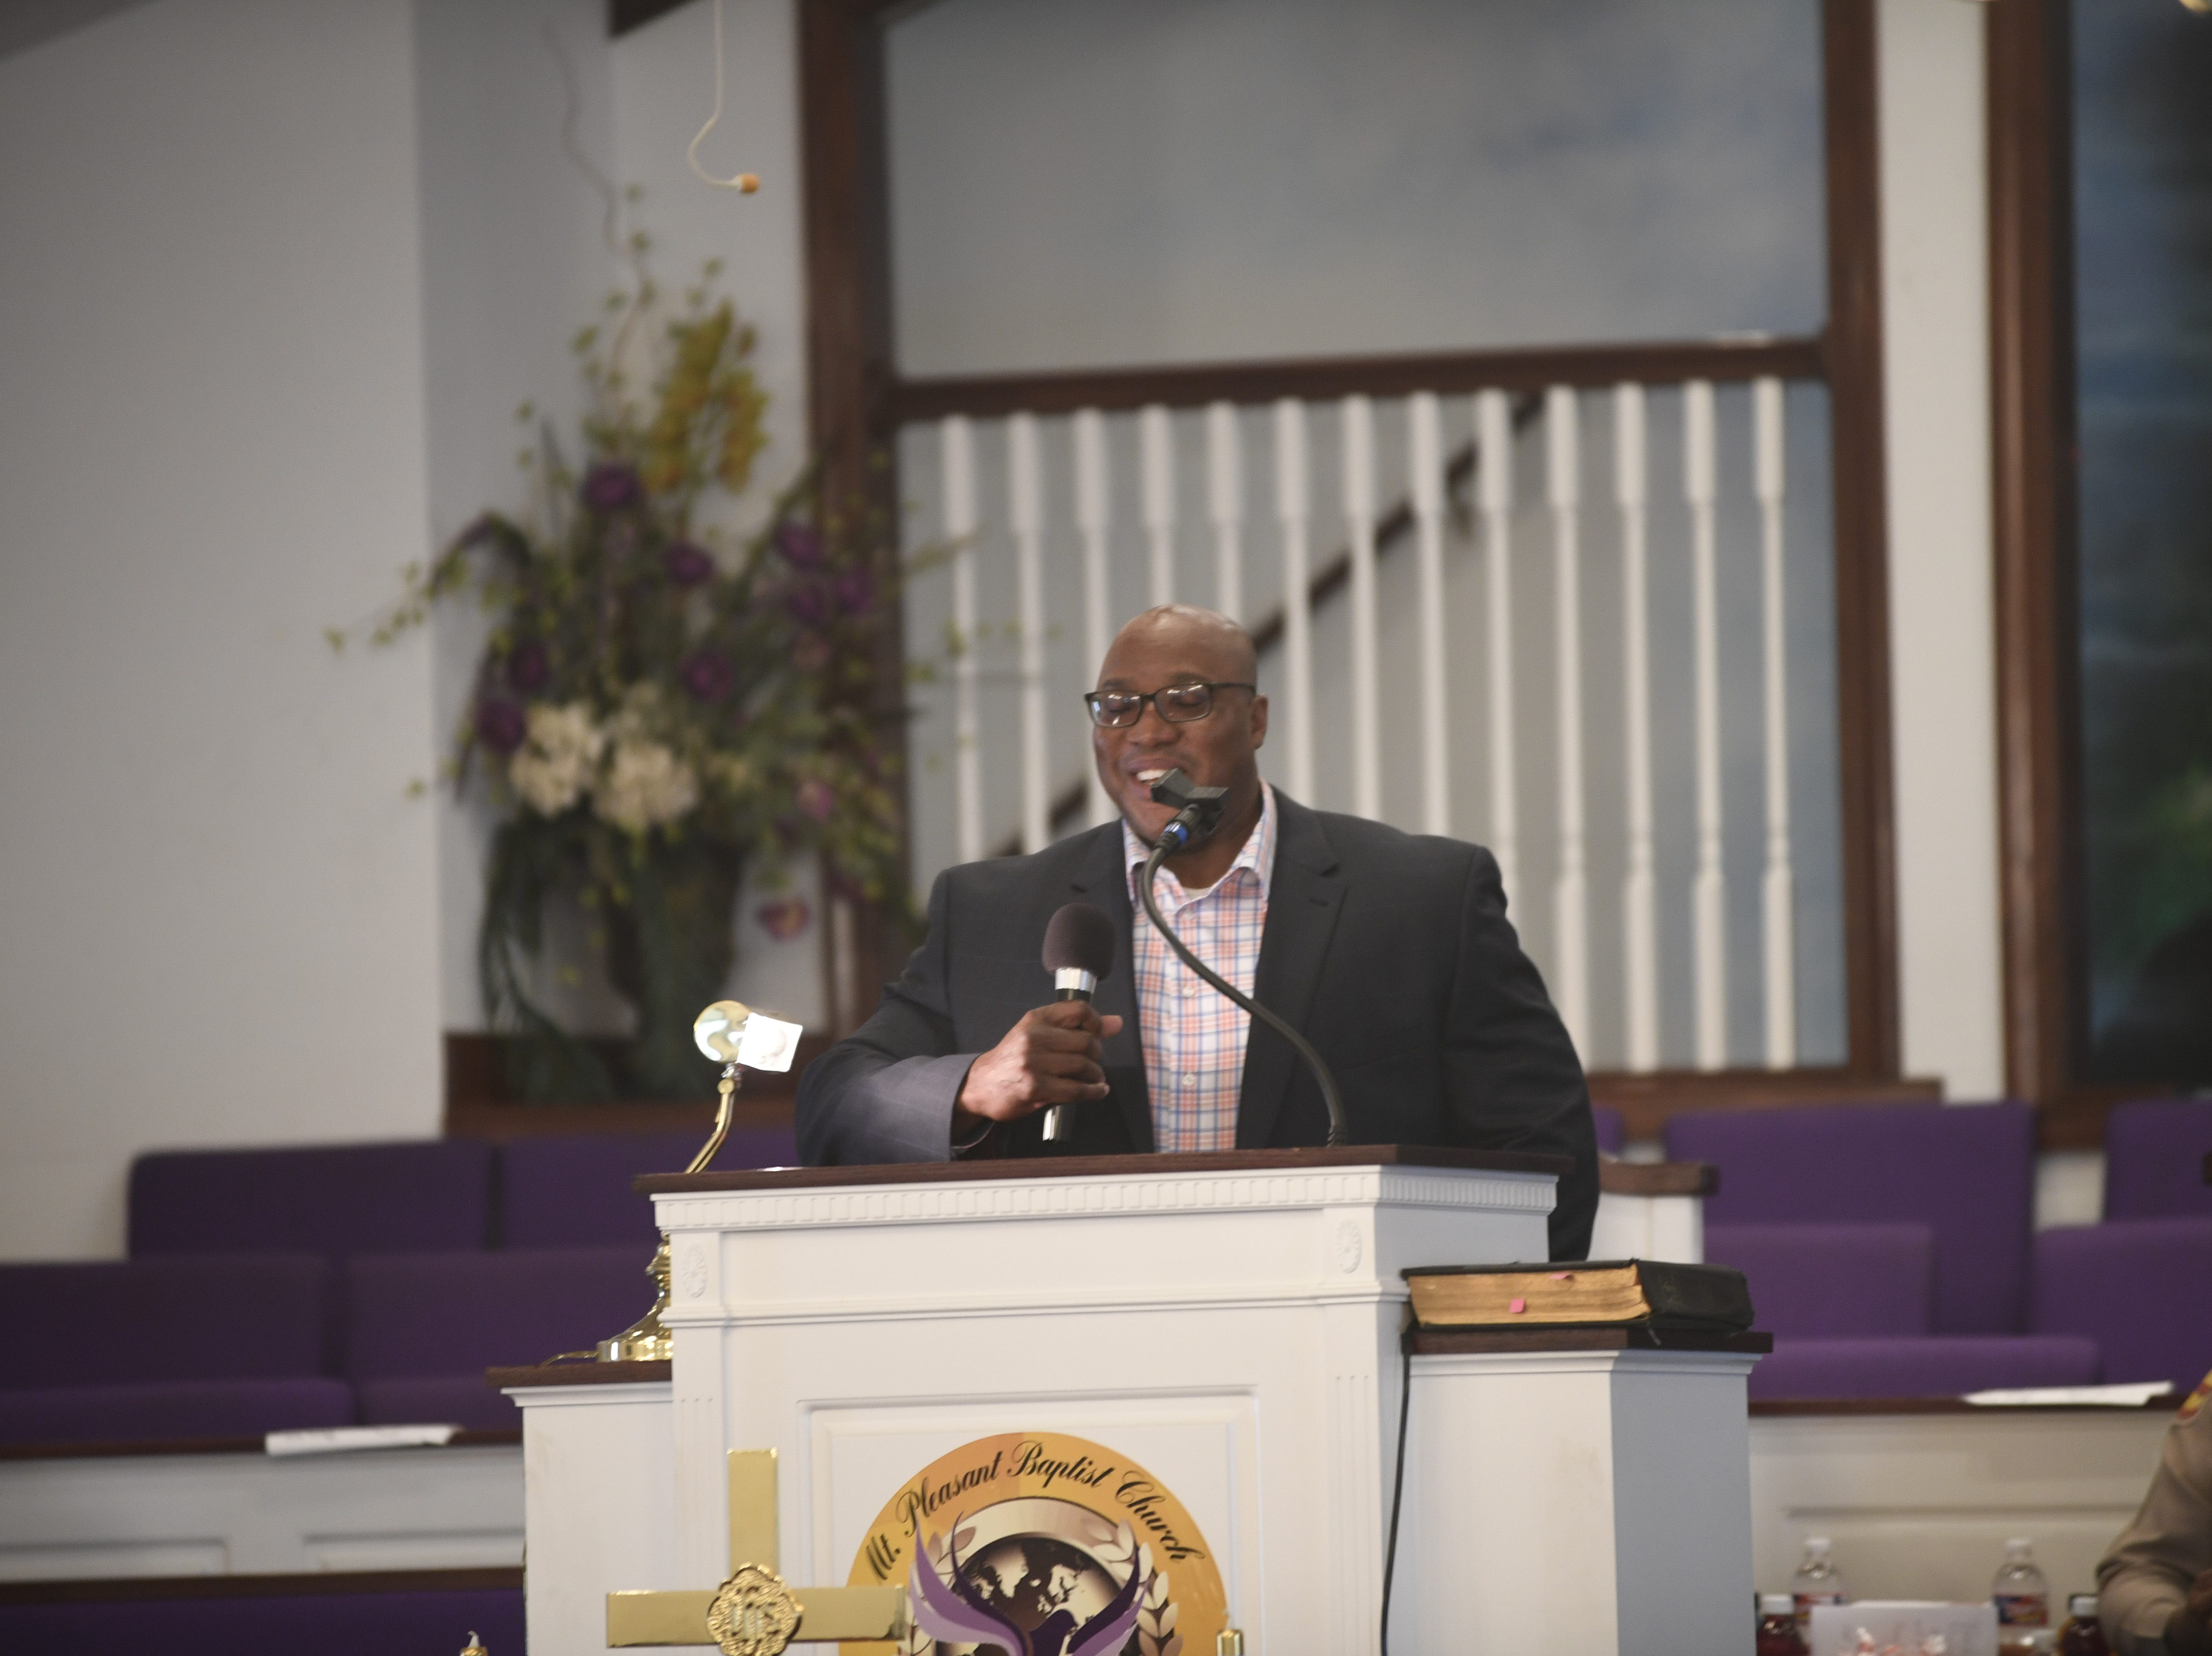 Tennessee Highway Patrol Lt. William Futrell addresses the crowd during Mt. Pleasant Baptist Church's Black History Month event Feb. 24, 2019, in Pinson, Tenn.